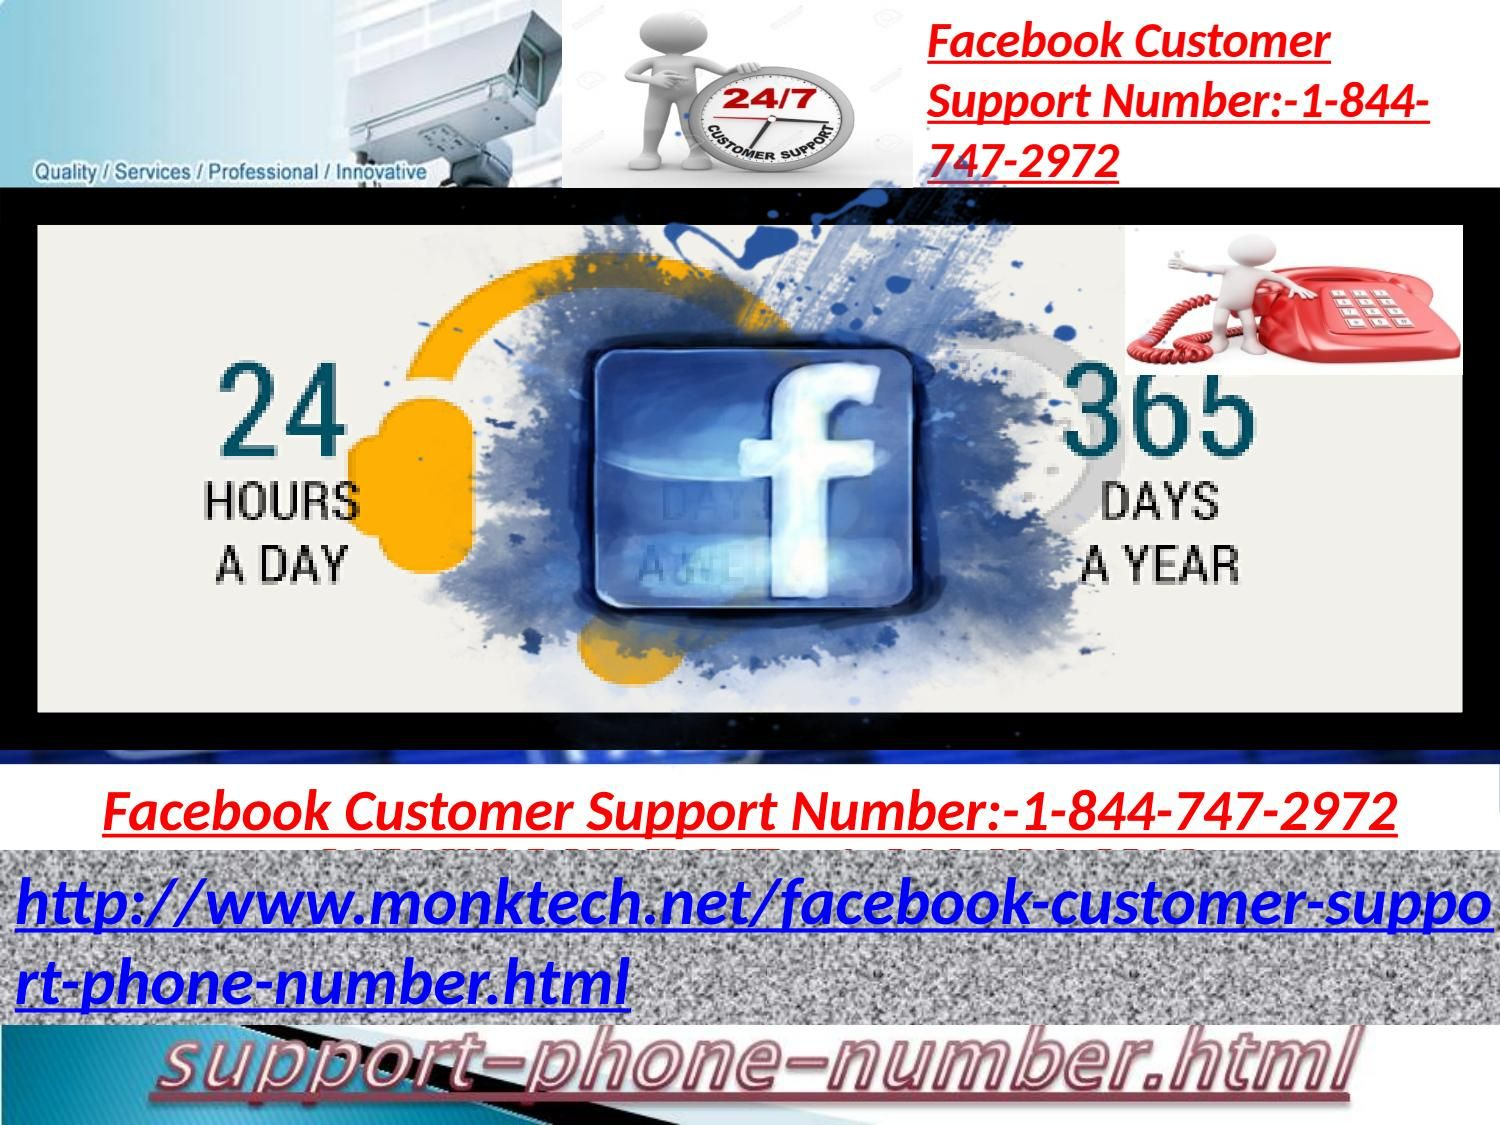 Are You Aware About Facebook Customer Support Number 1